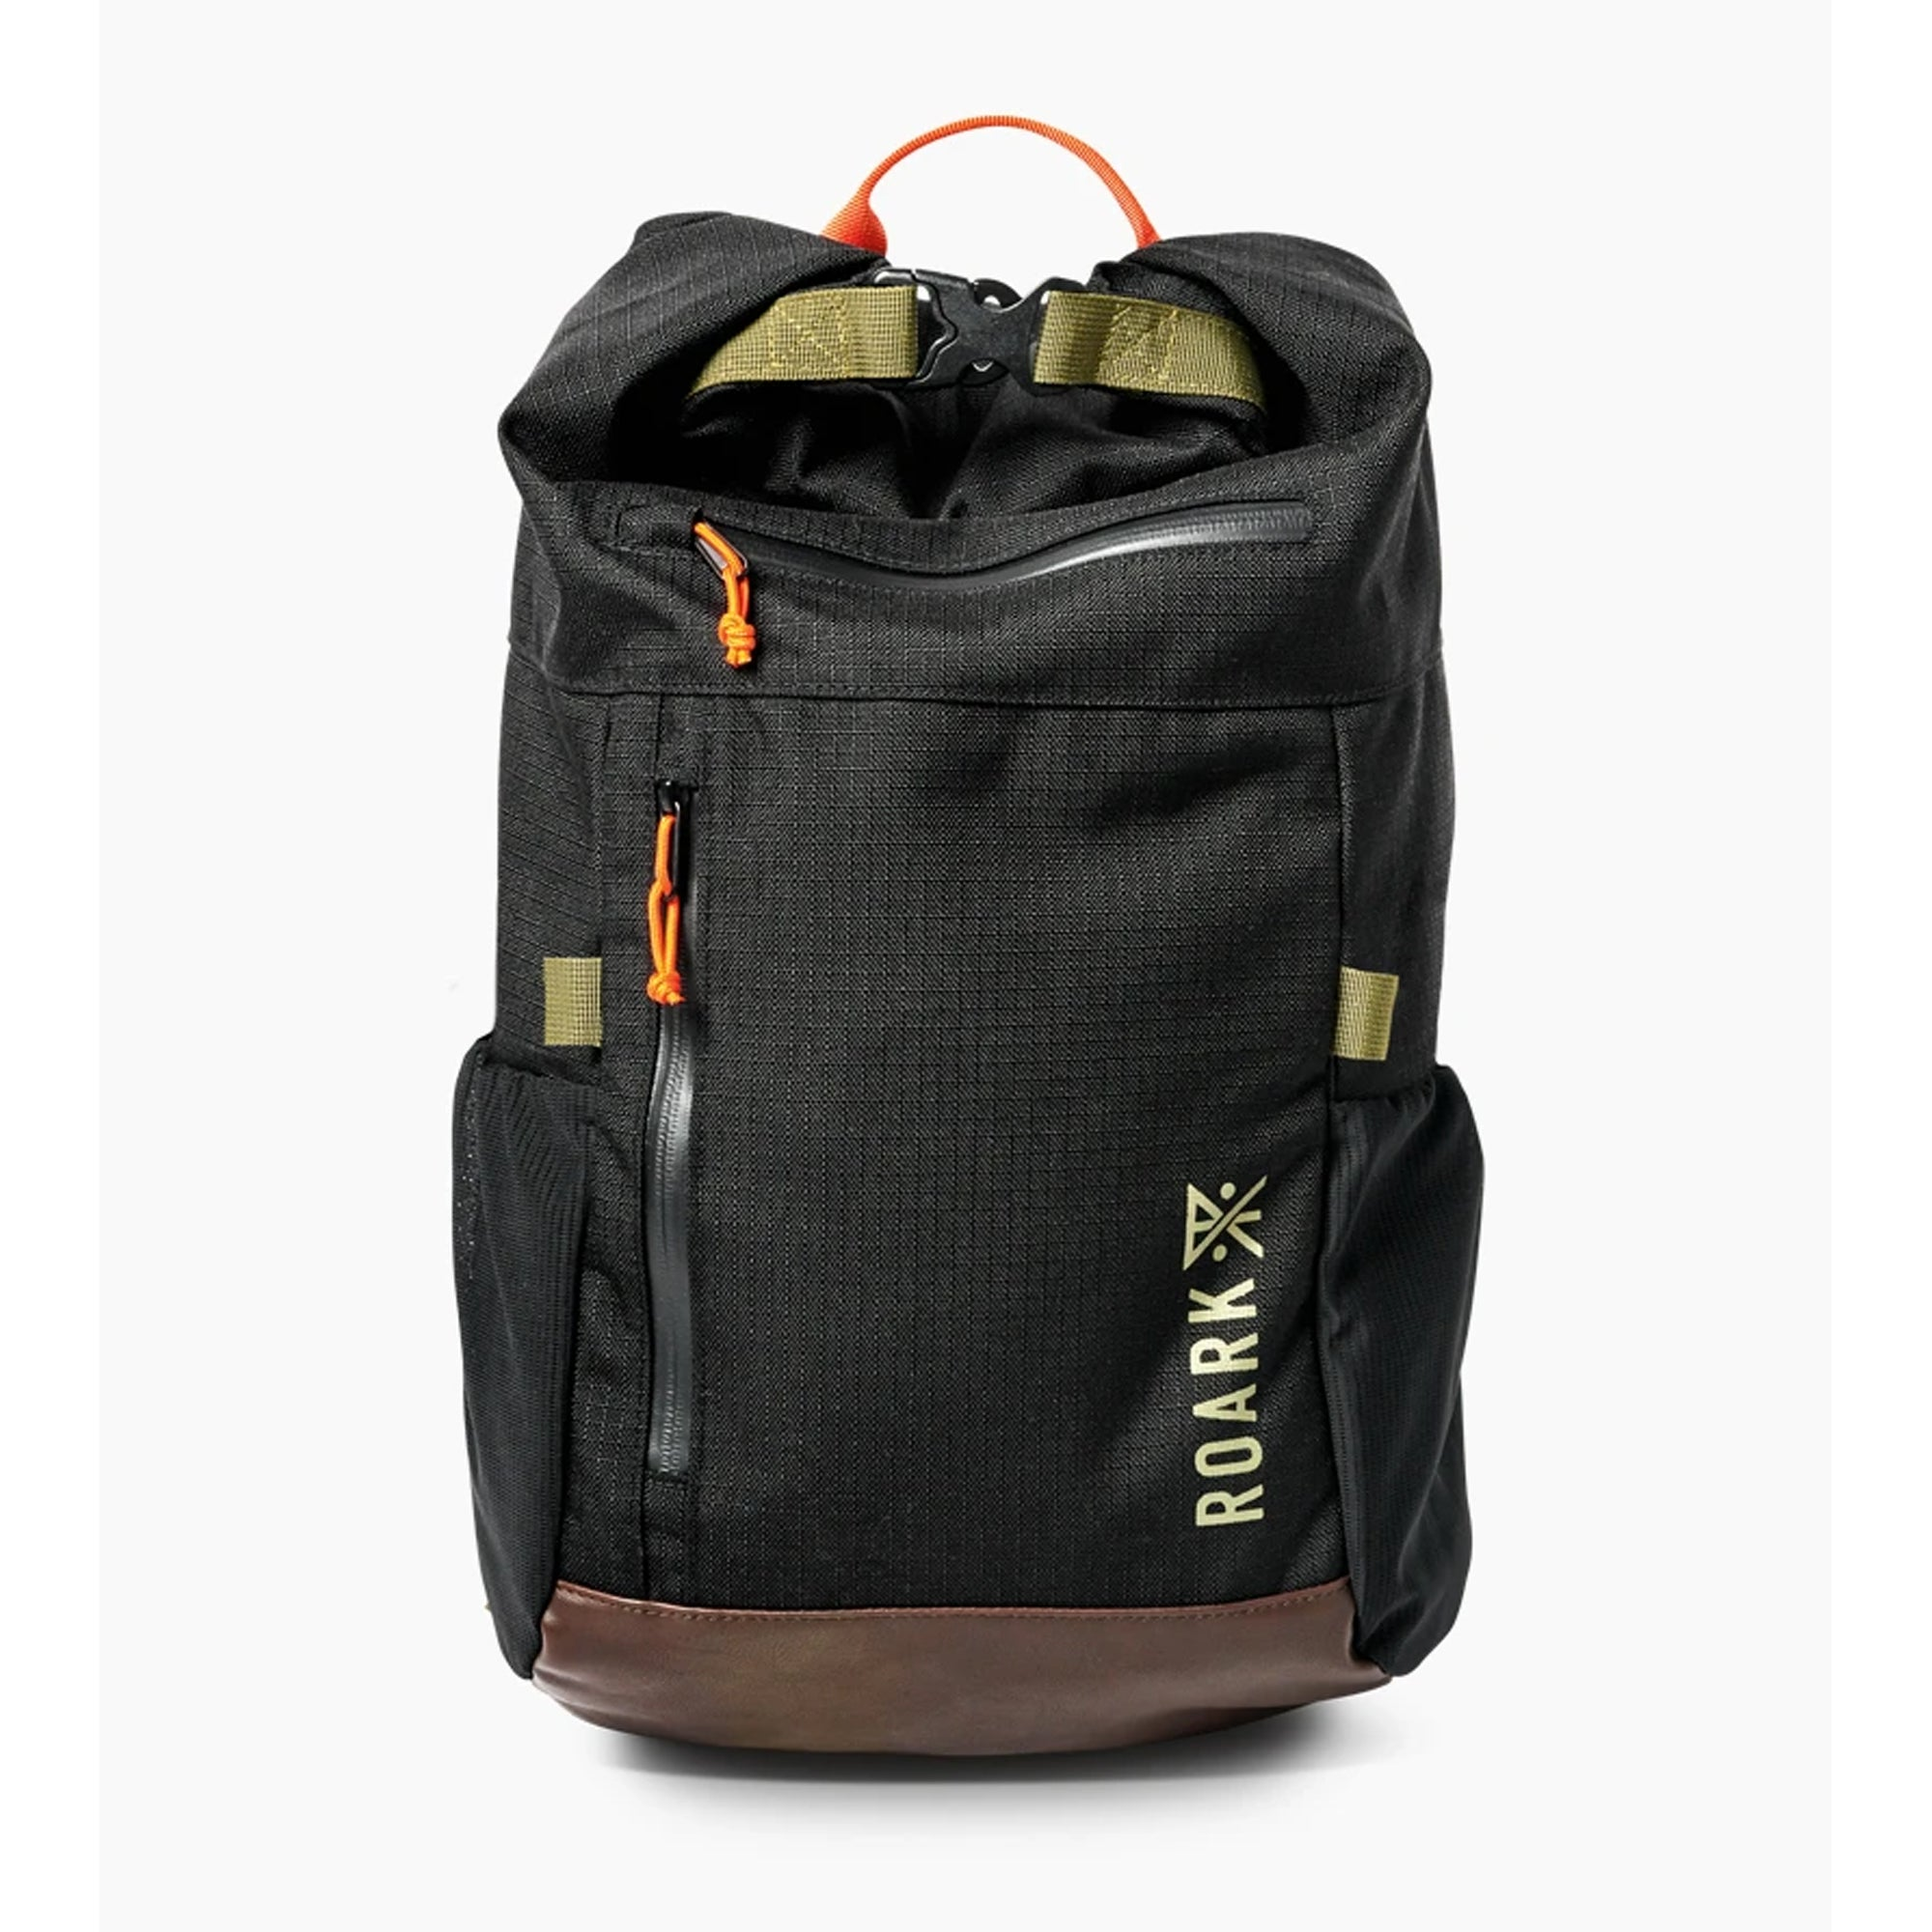 Roark Day Trip Passenger 27L Backpack